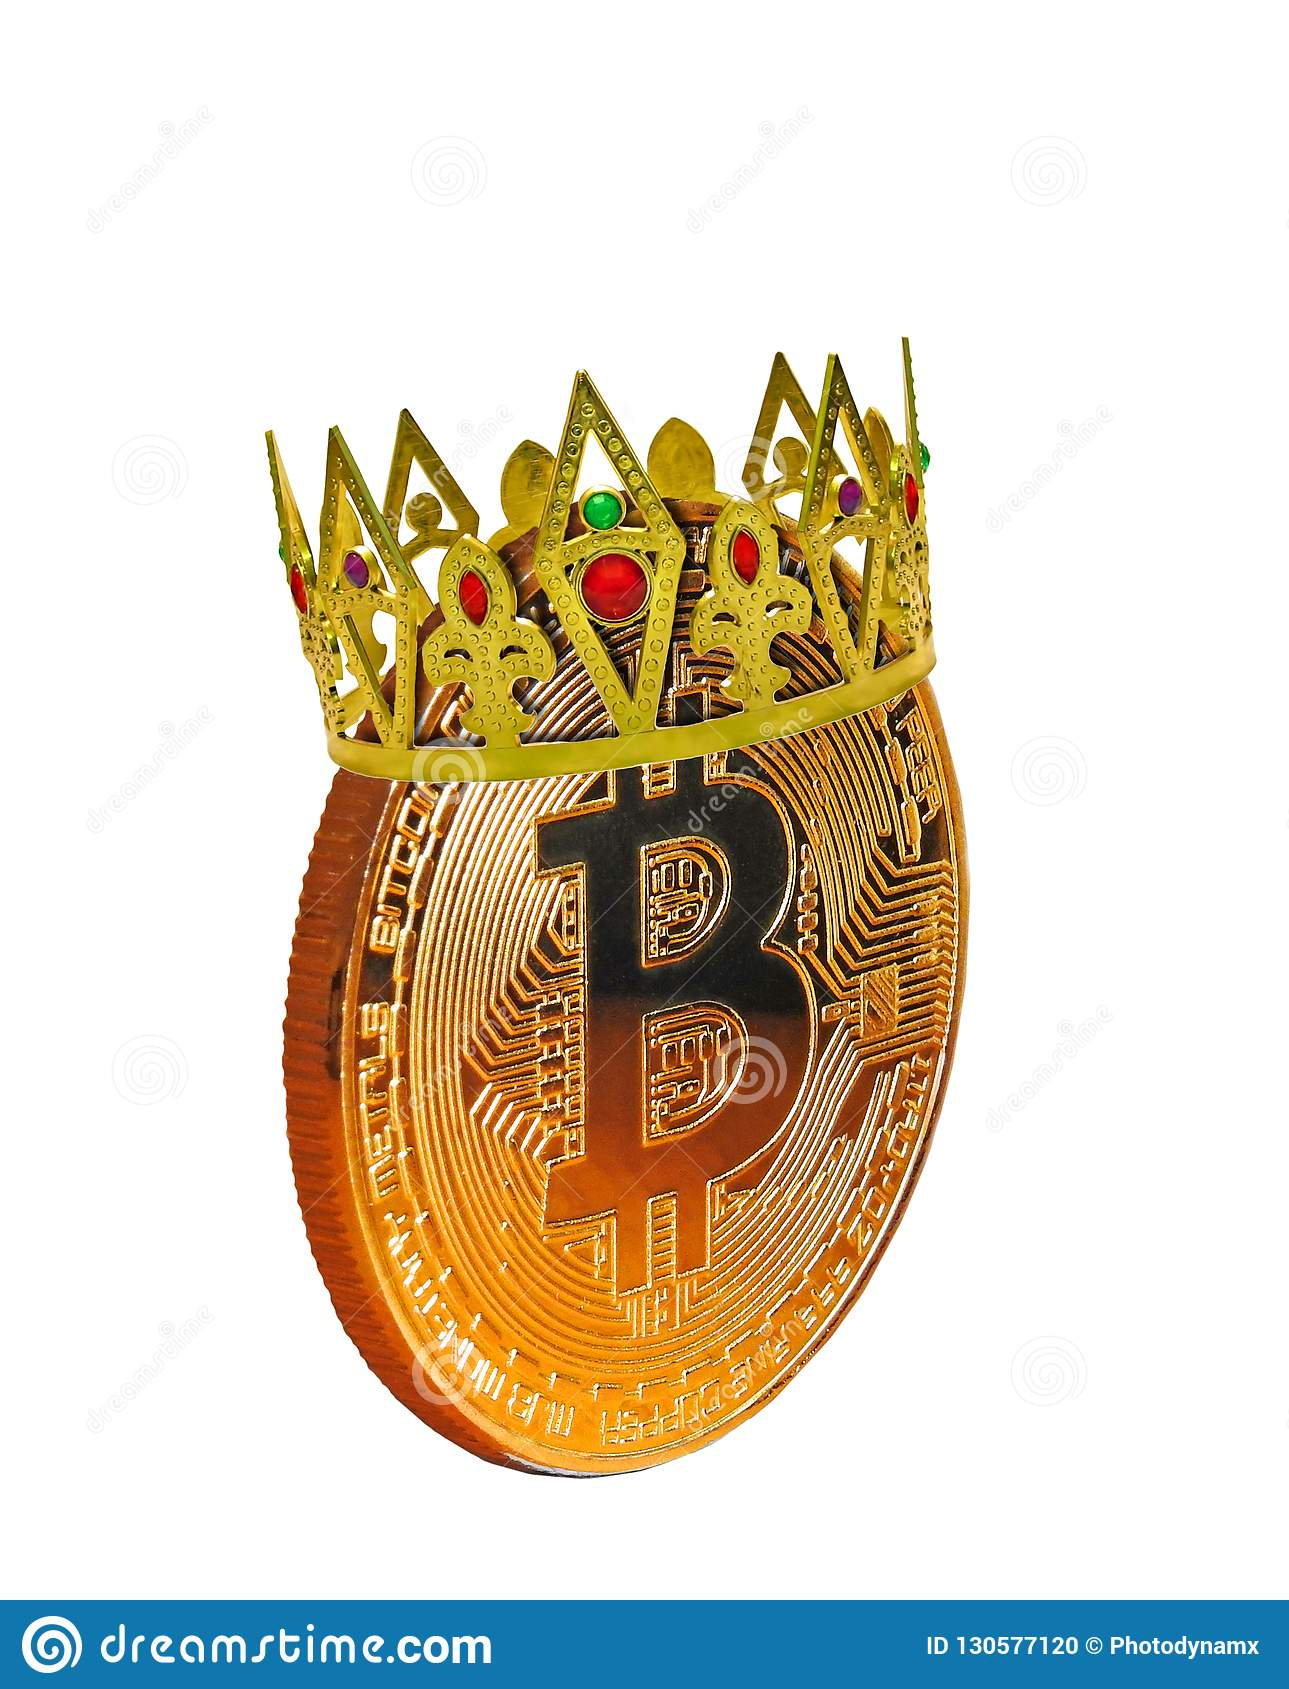 crown cryptocurrency price